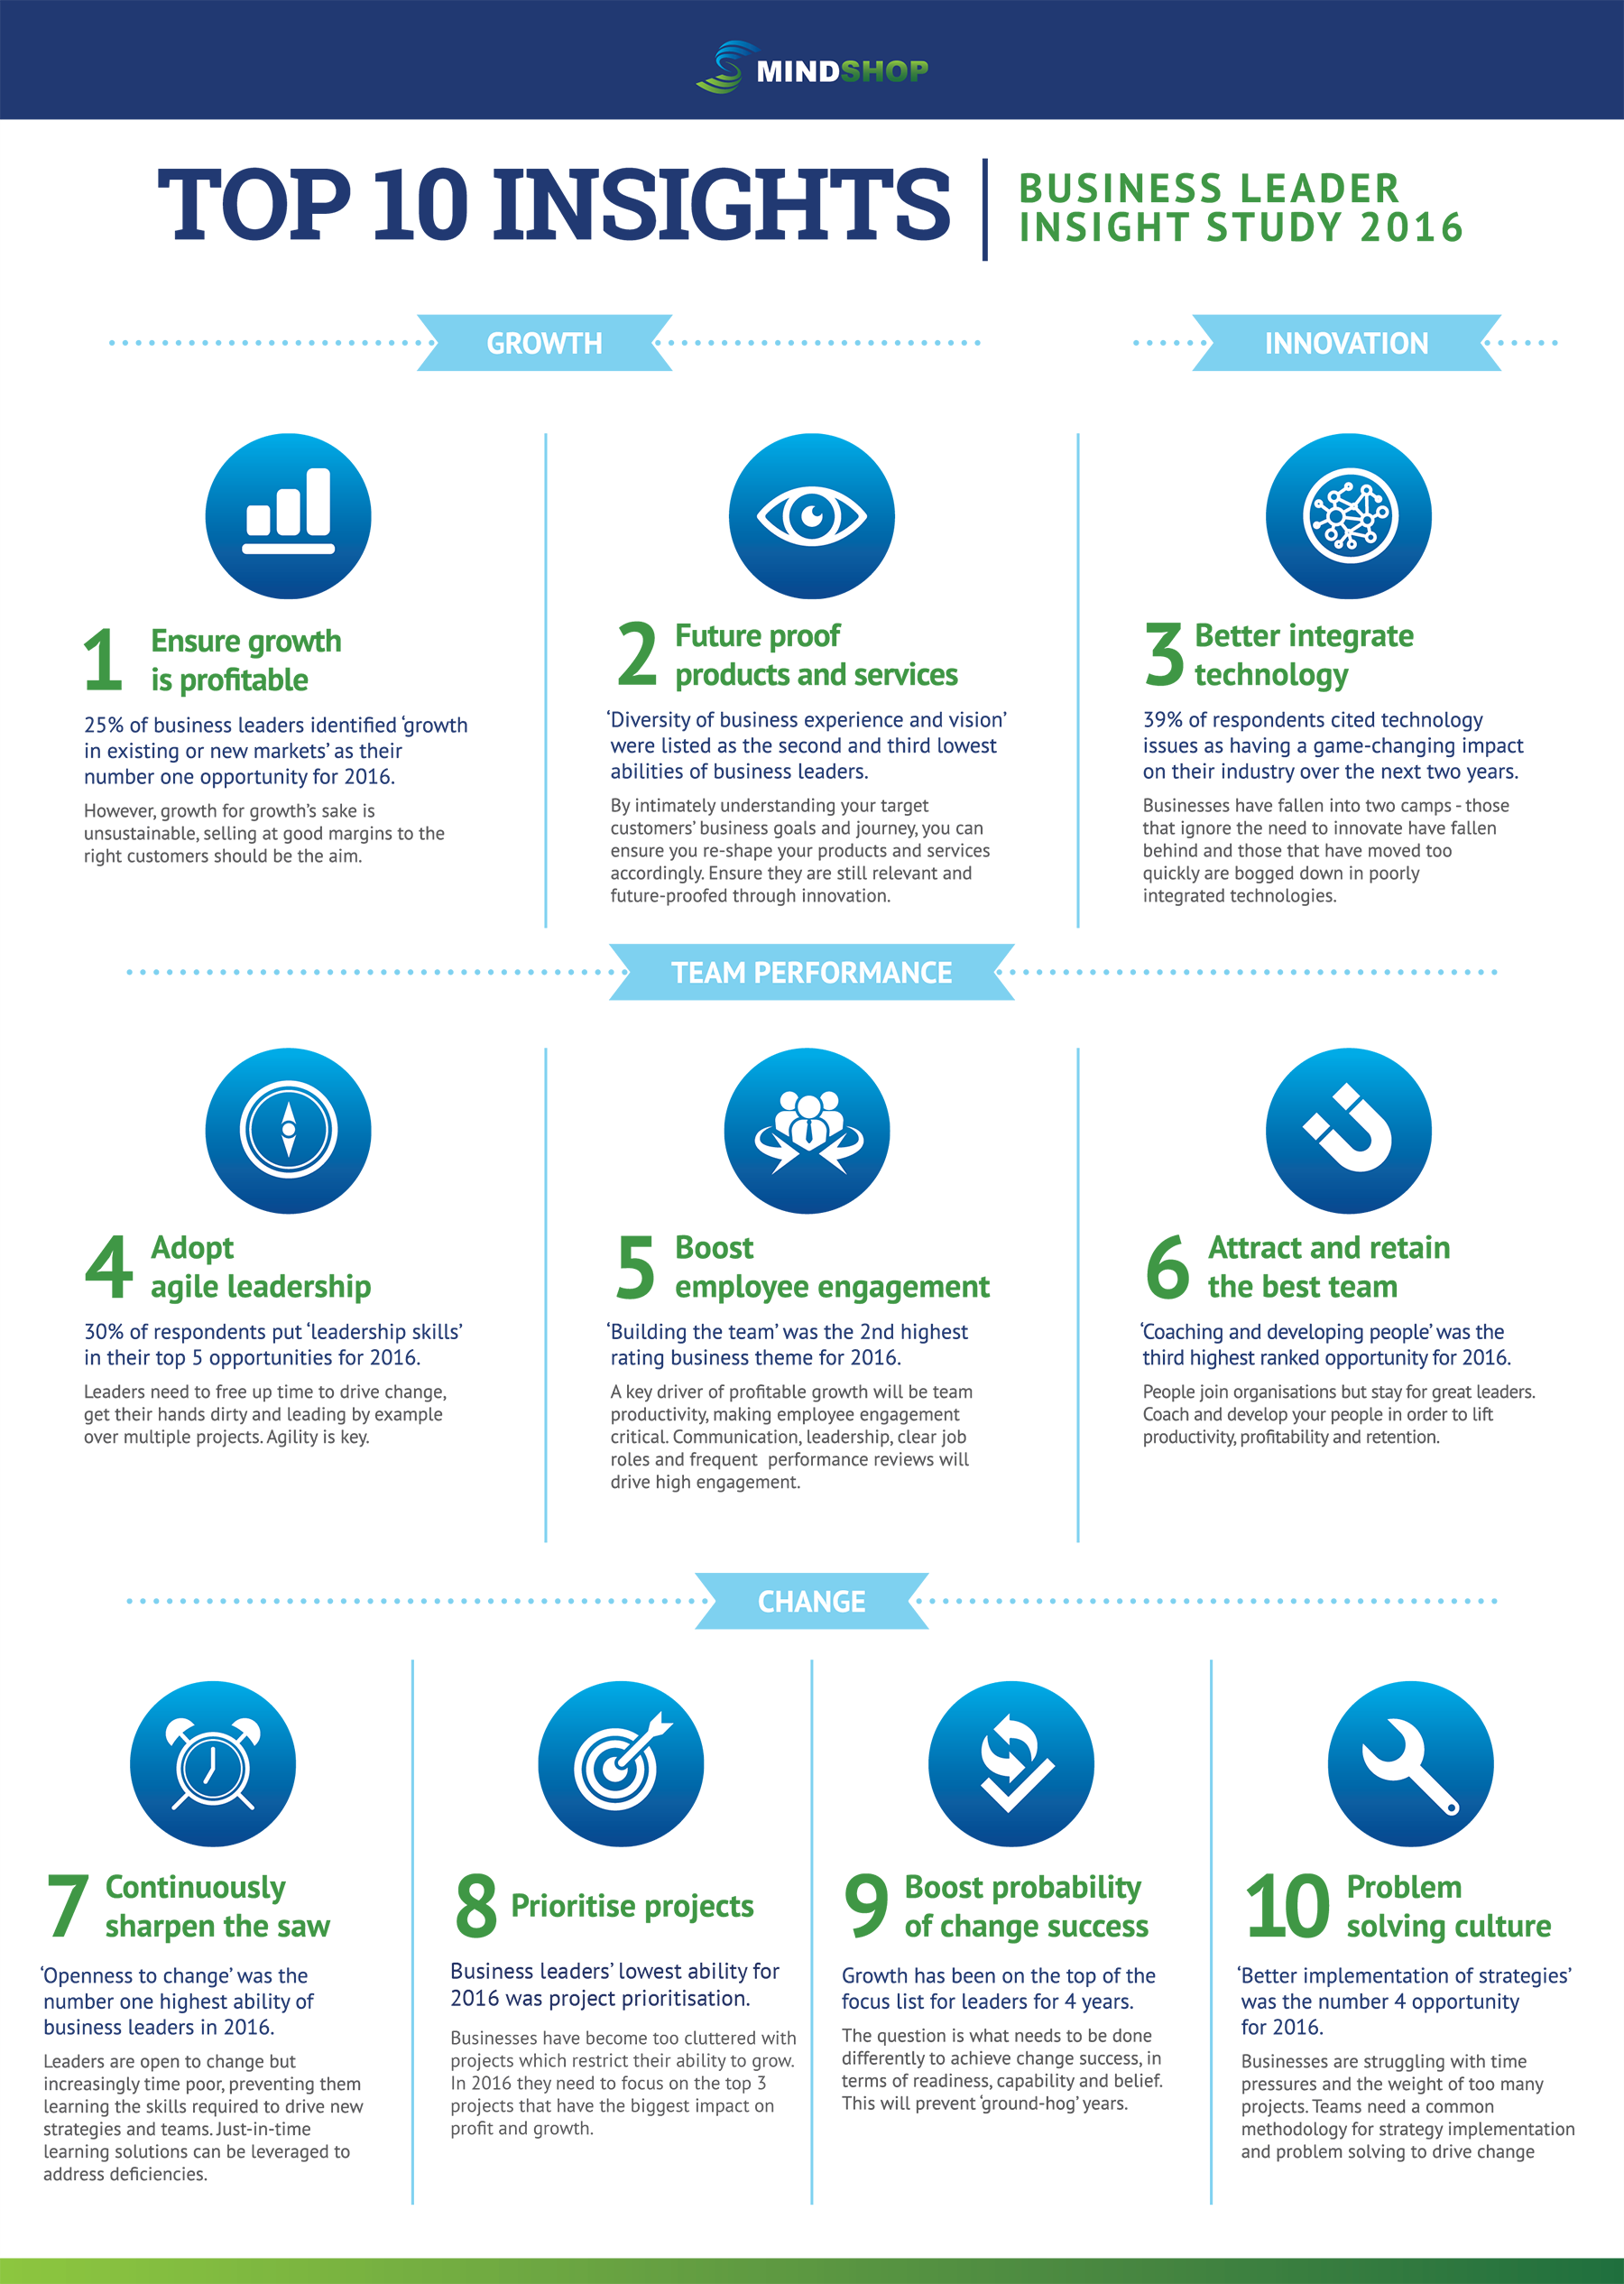 Top 10 Business Leaders Insights